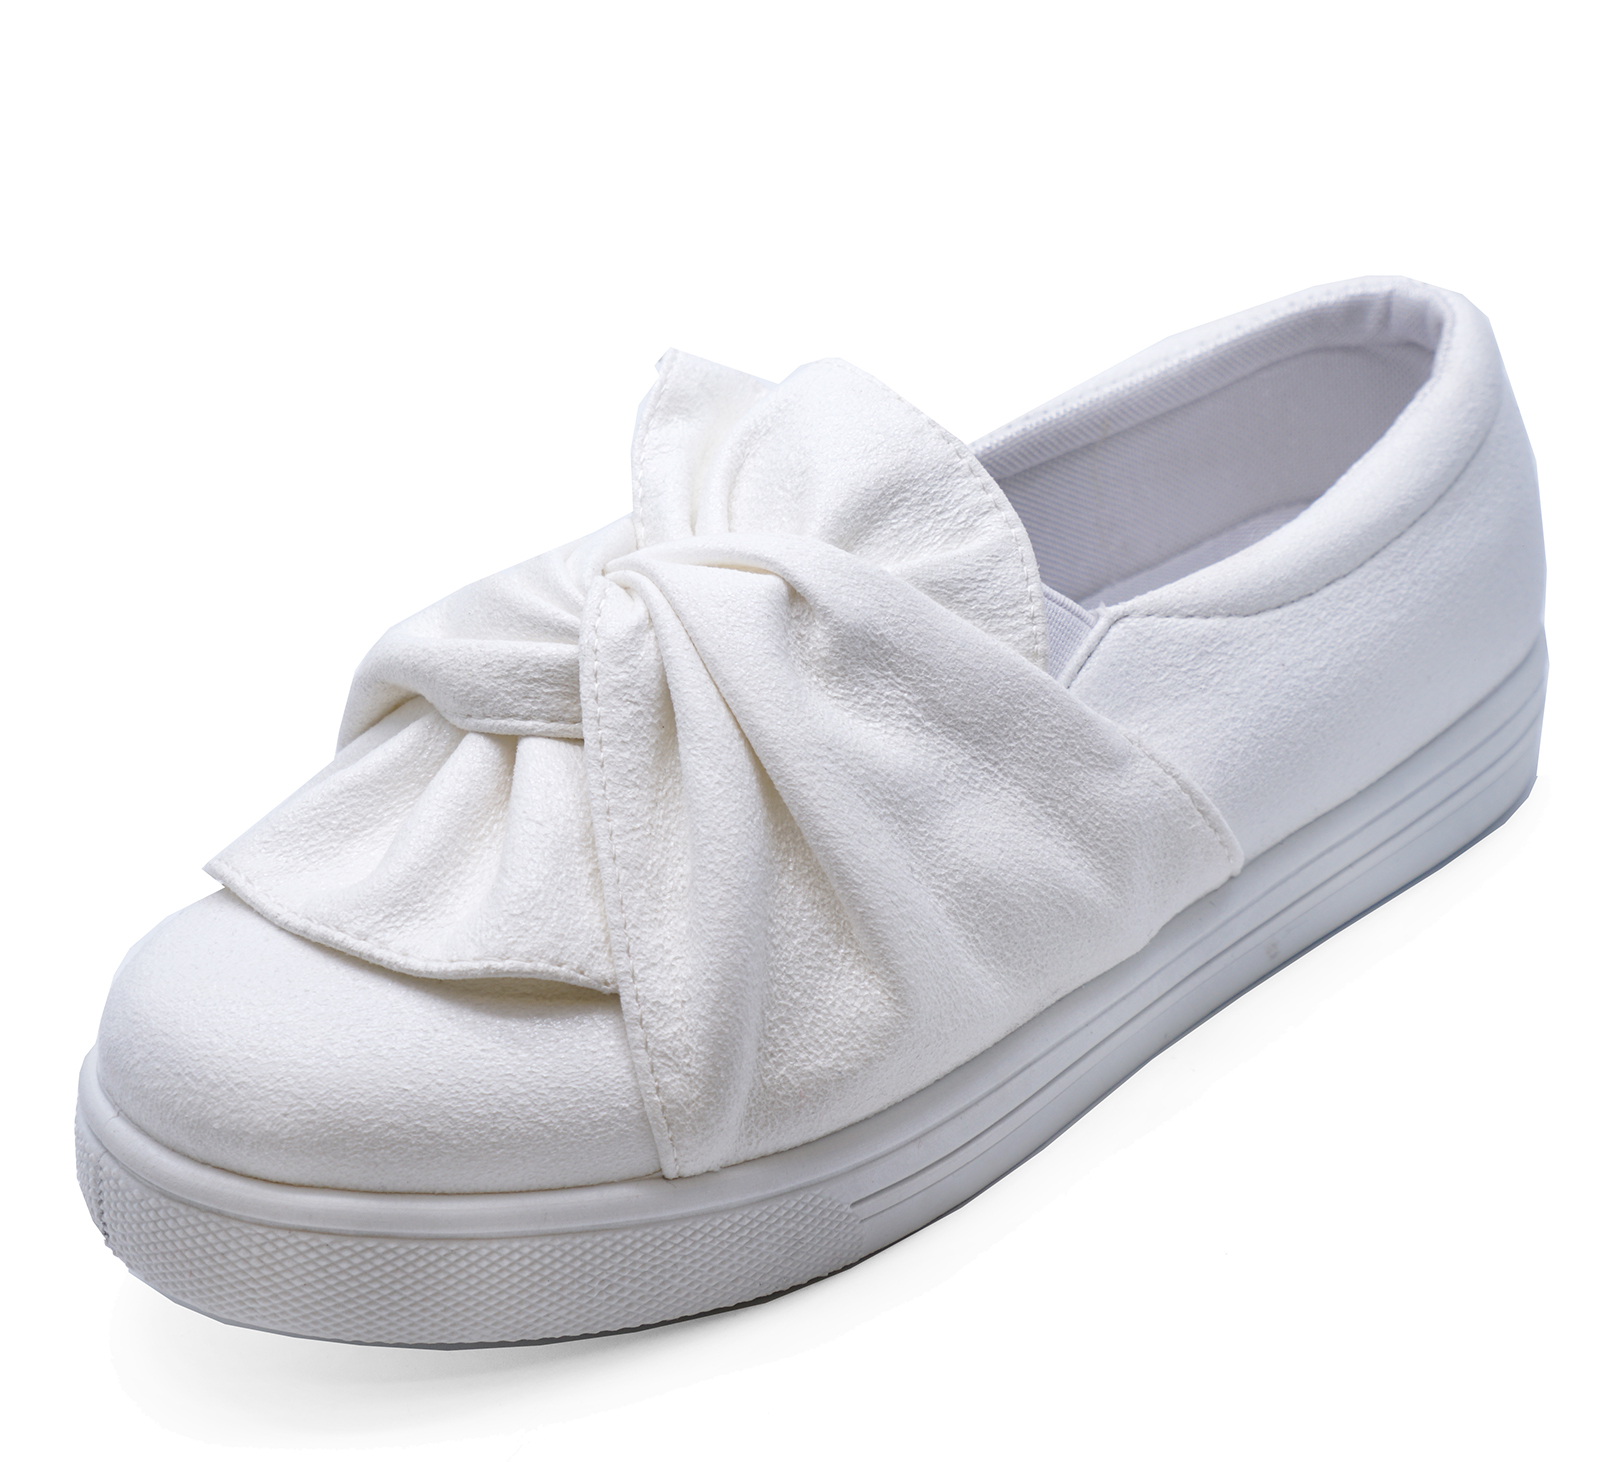 bc9f5782f Sentinel WOMENS FLAT WHITE SLIP-ON PLIMSOLLS CASUAL PUMPS COMFY TRAINERS  SHOES UK 3-8